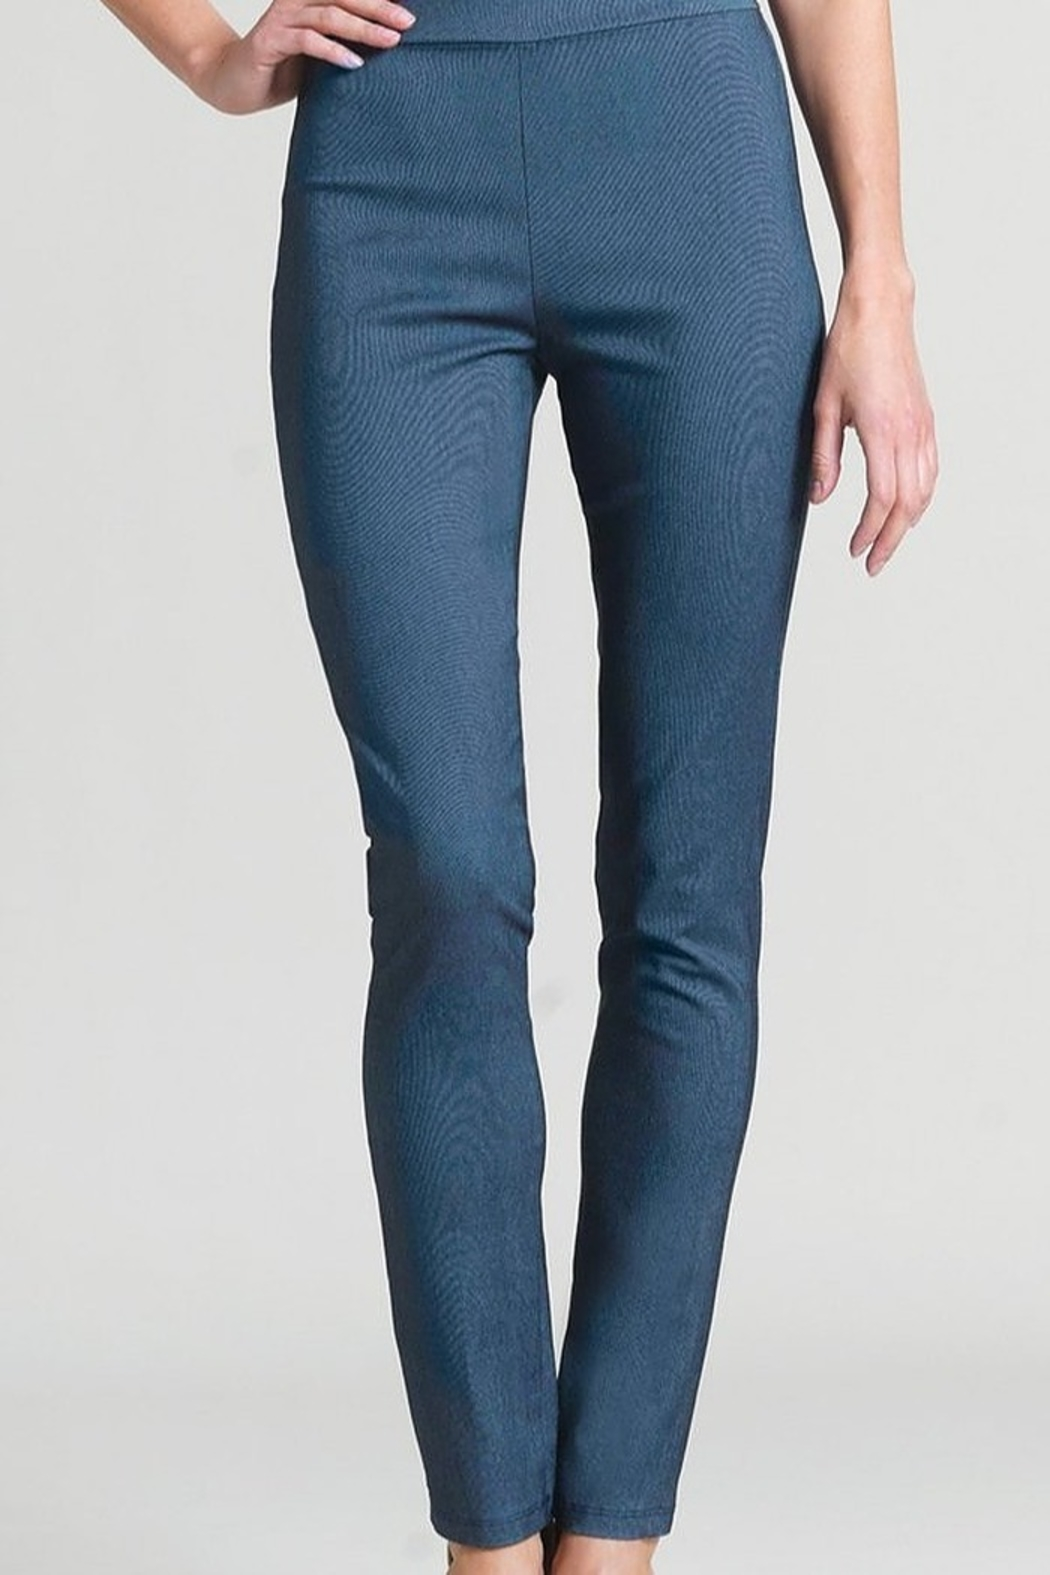 Clara Sun Woo Techno Stretch Straight Leg Pant - Blue Denim - Main Image